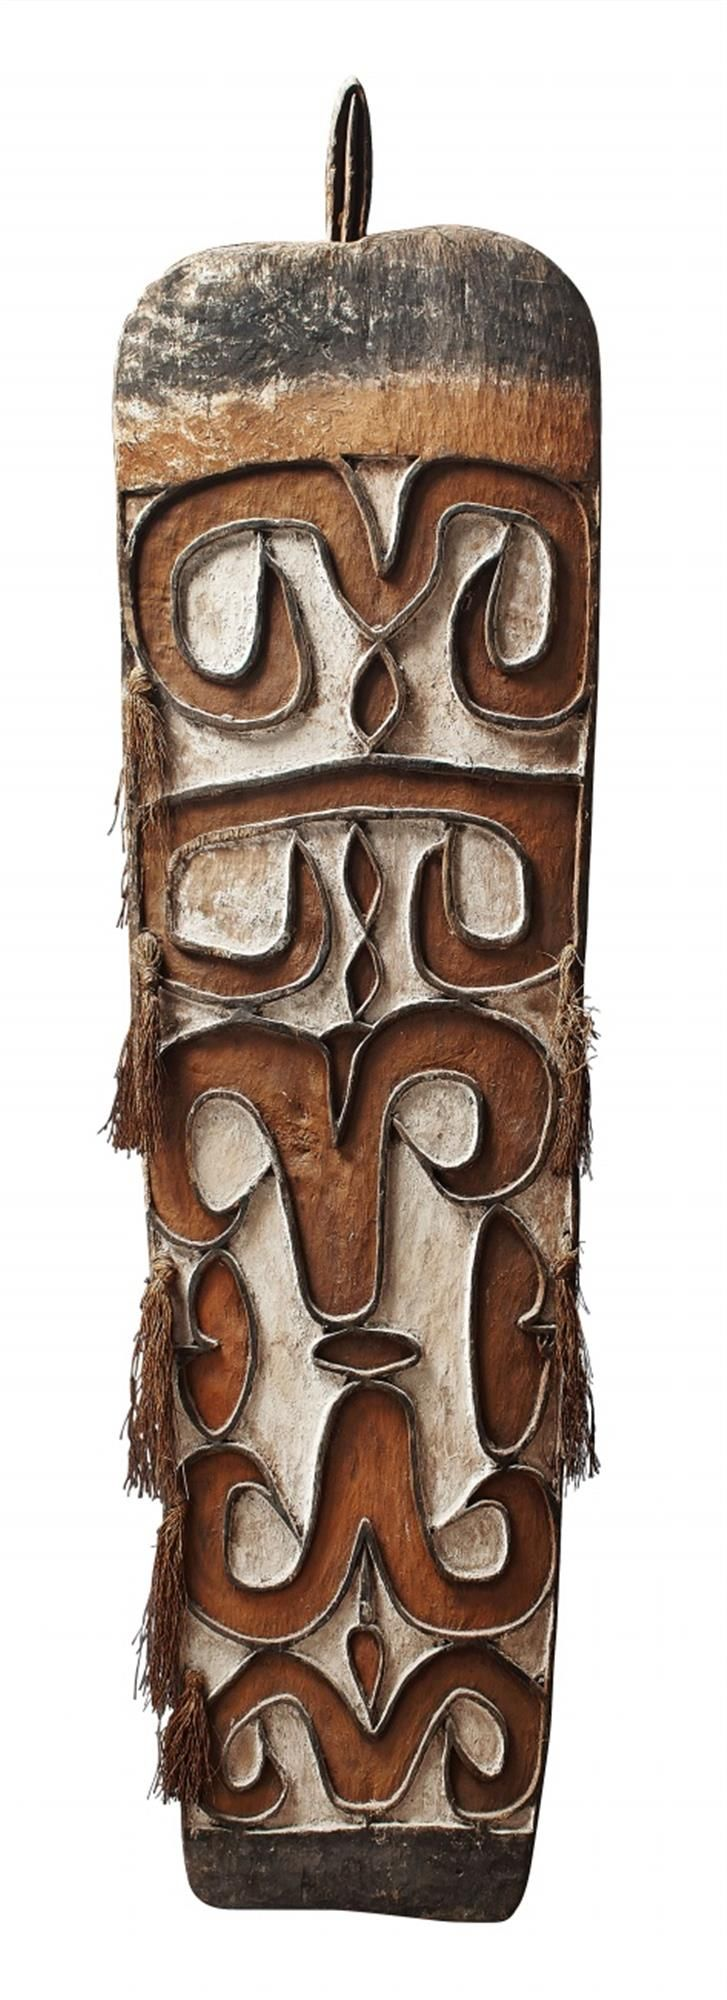 Papua, IndonesiaAN ASMAT SHIELD, Auction 1054 African and Oceanic Art, Lot 140